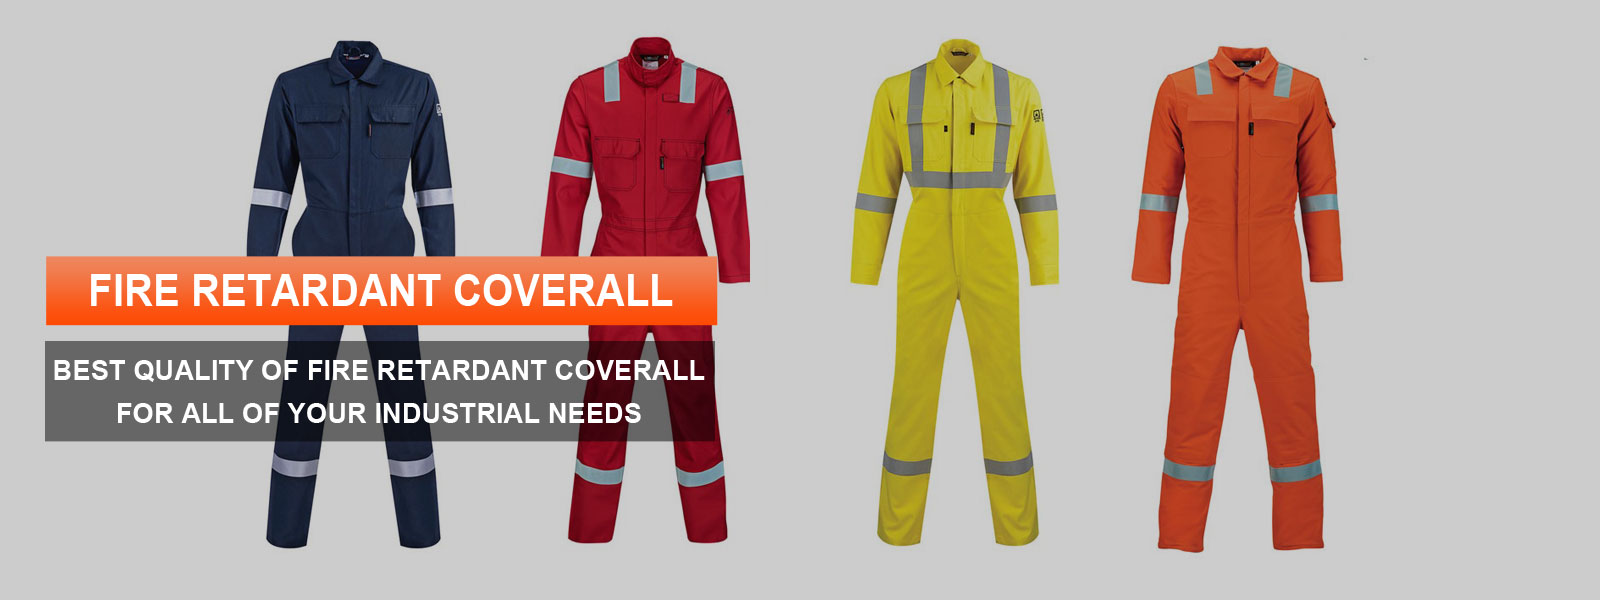 Fire Retardant Coverall Manufacturers in Saint lucia